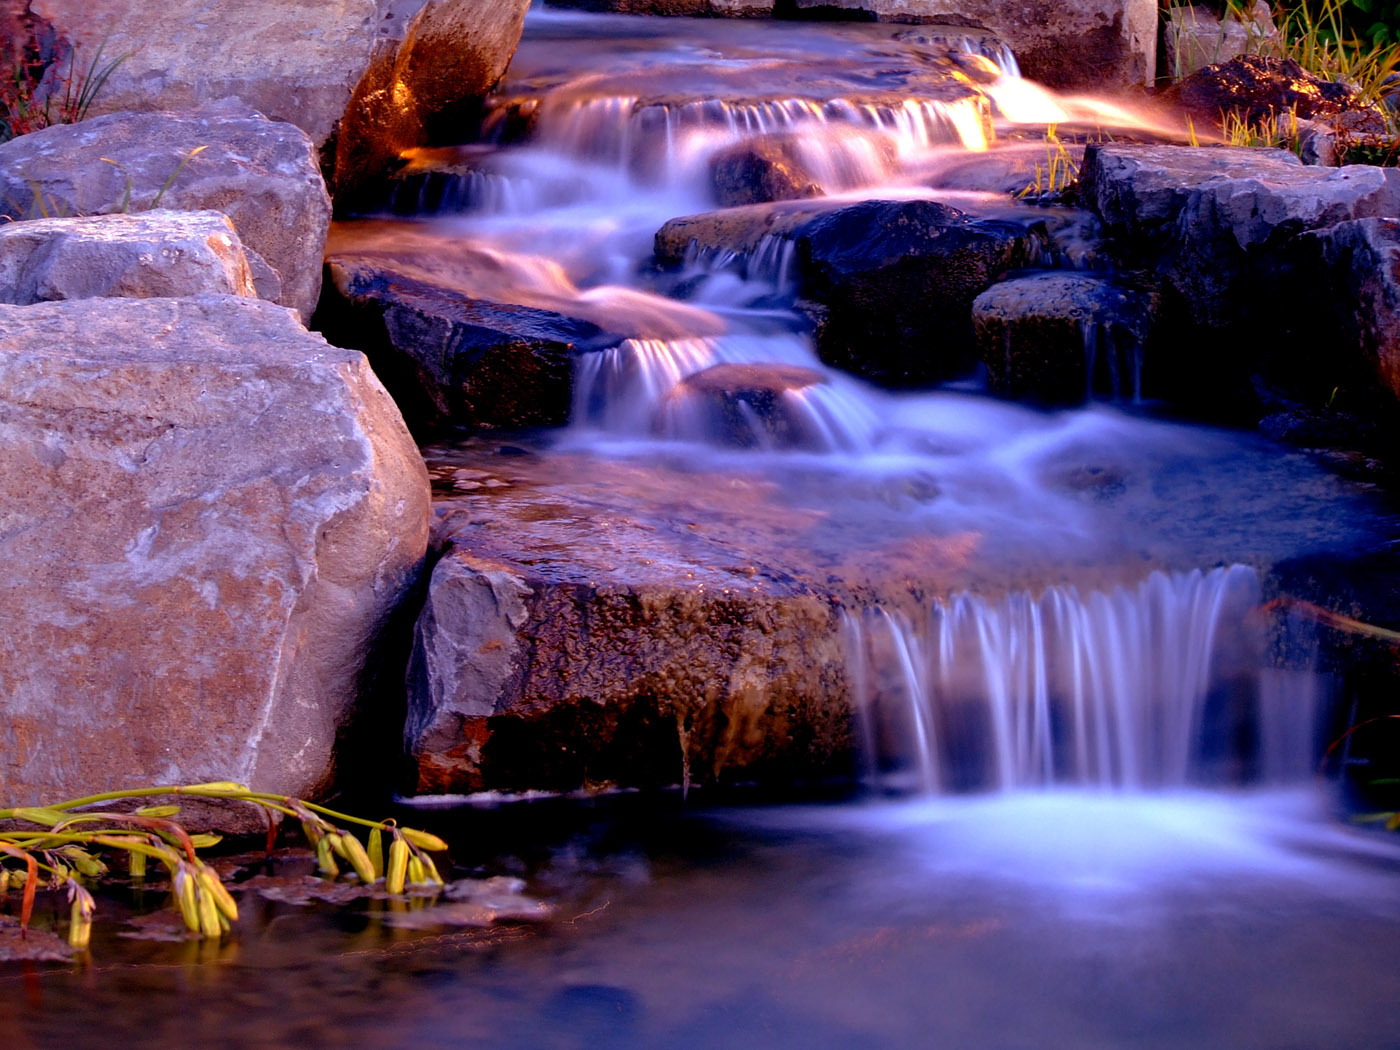 Water and streams 7064